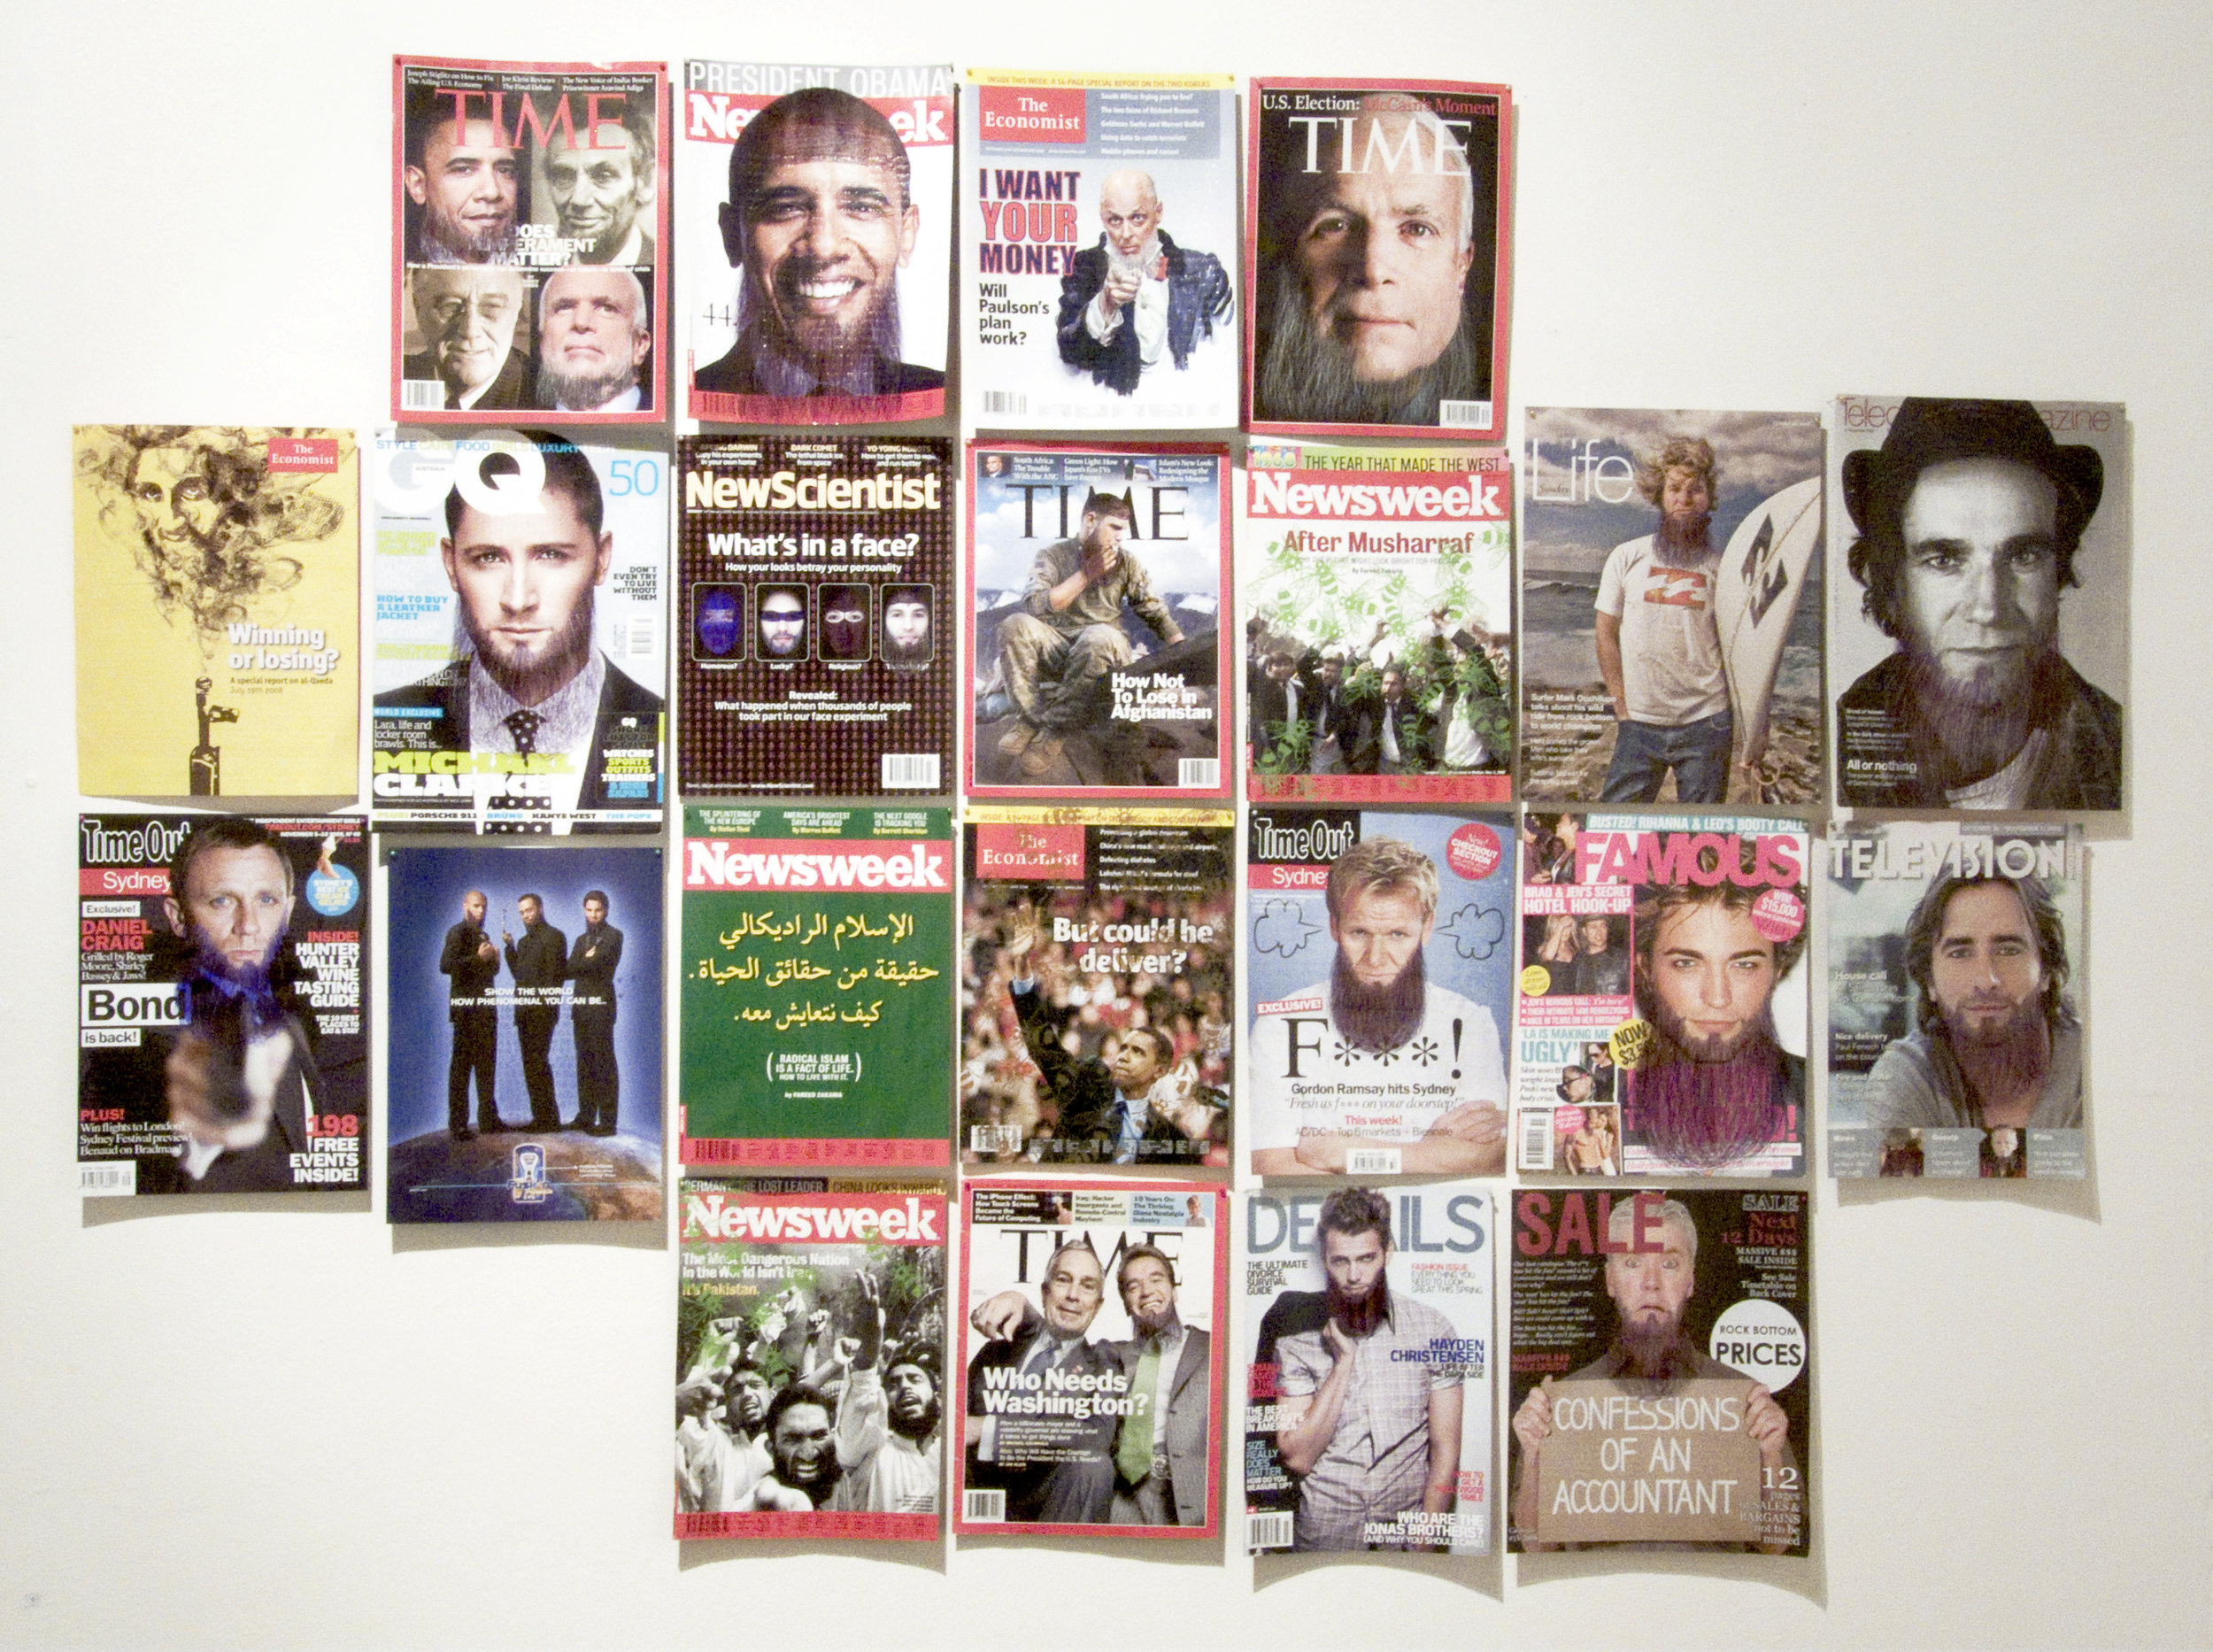 MakeOver series  (2008-), Ballpoint and blade on various magazine covers, dimensions variable.